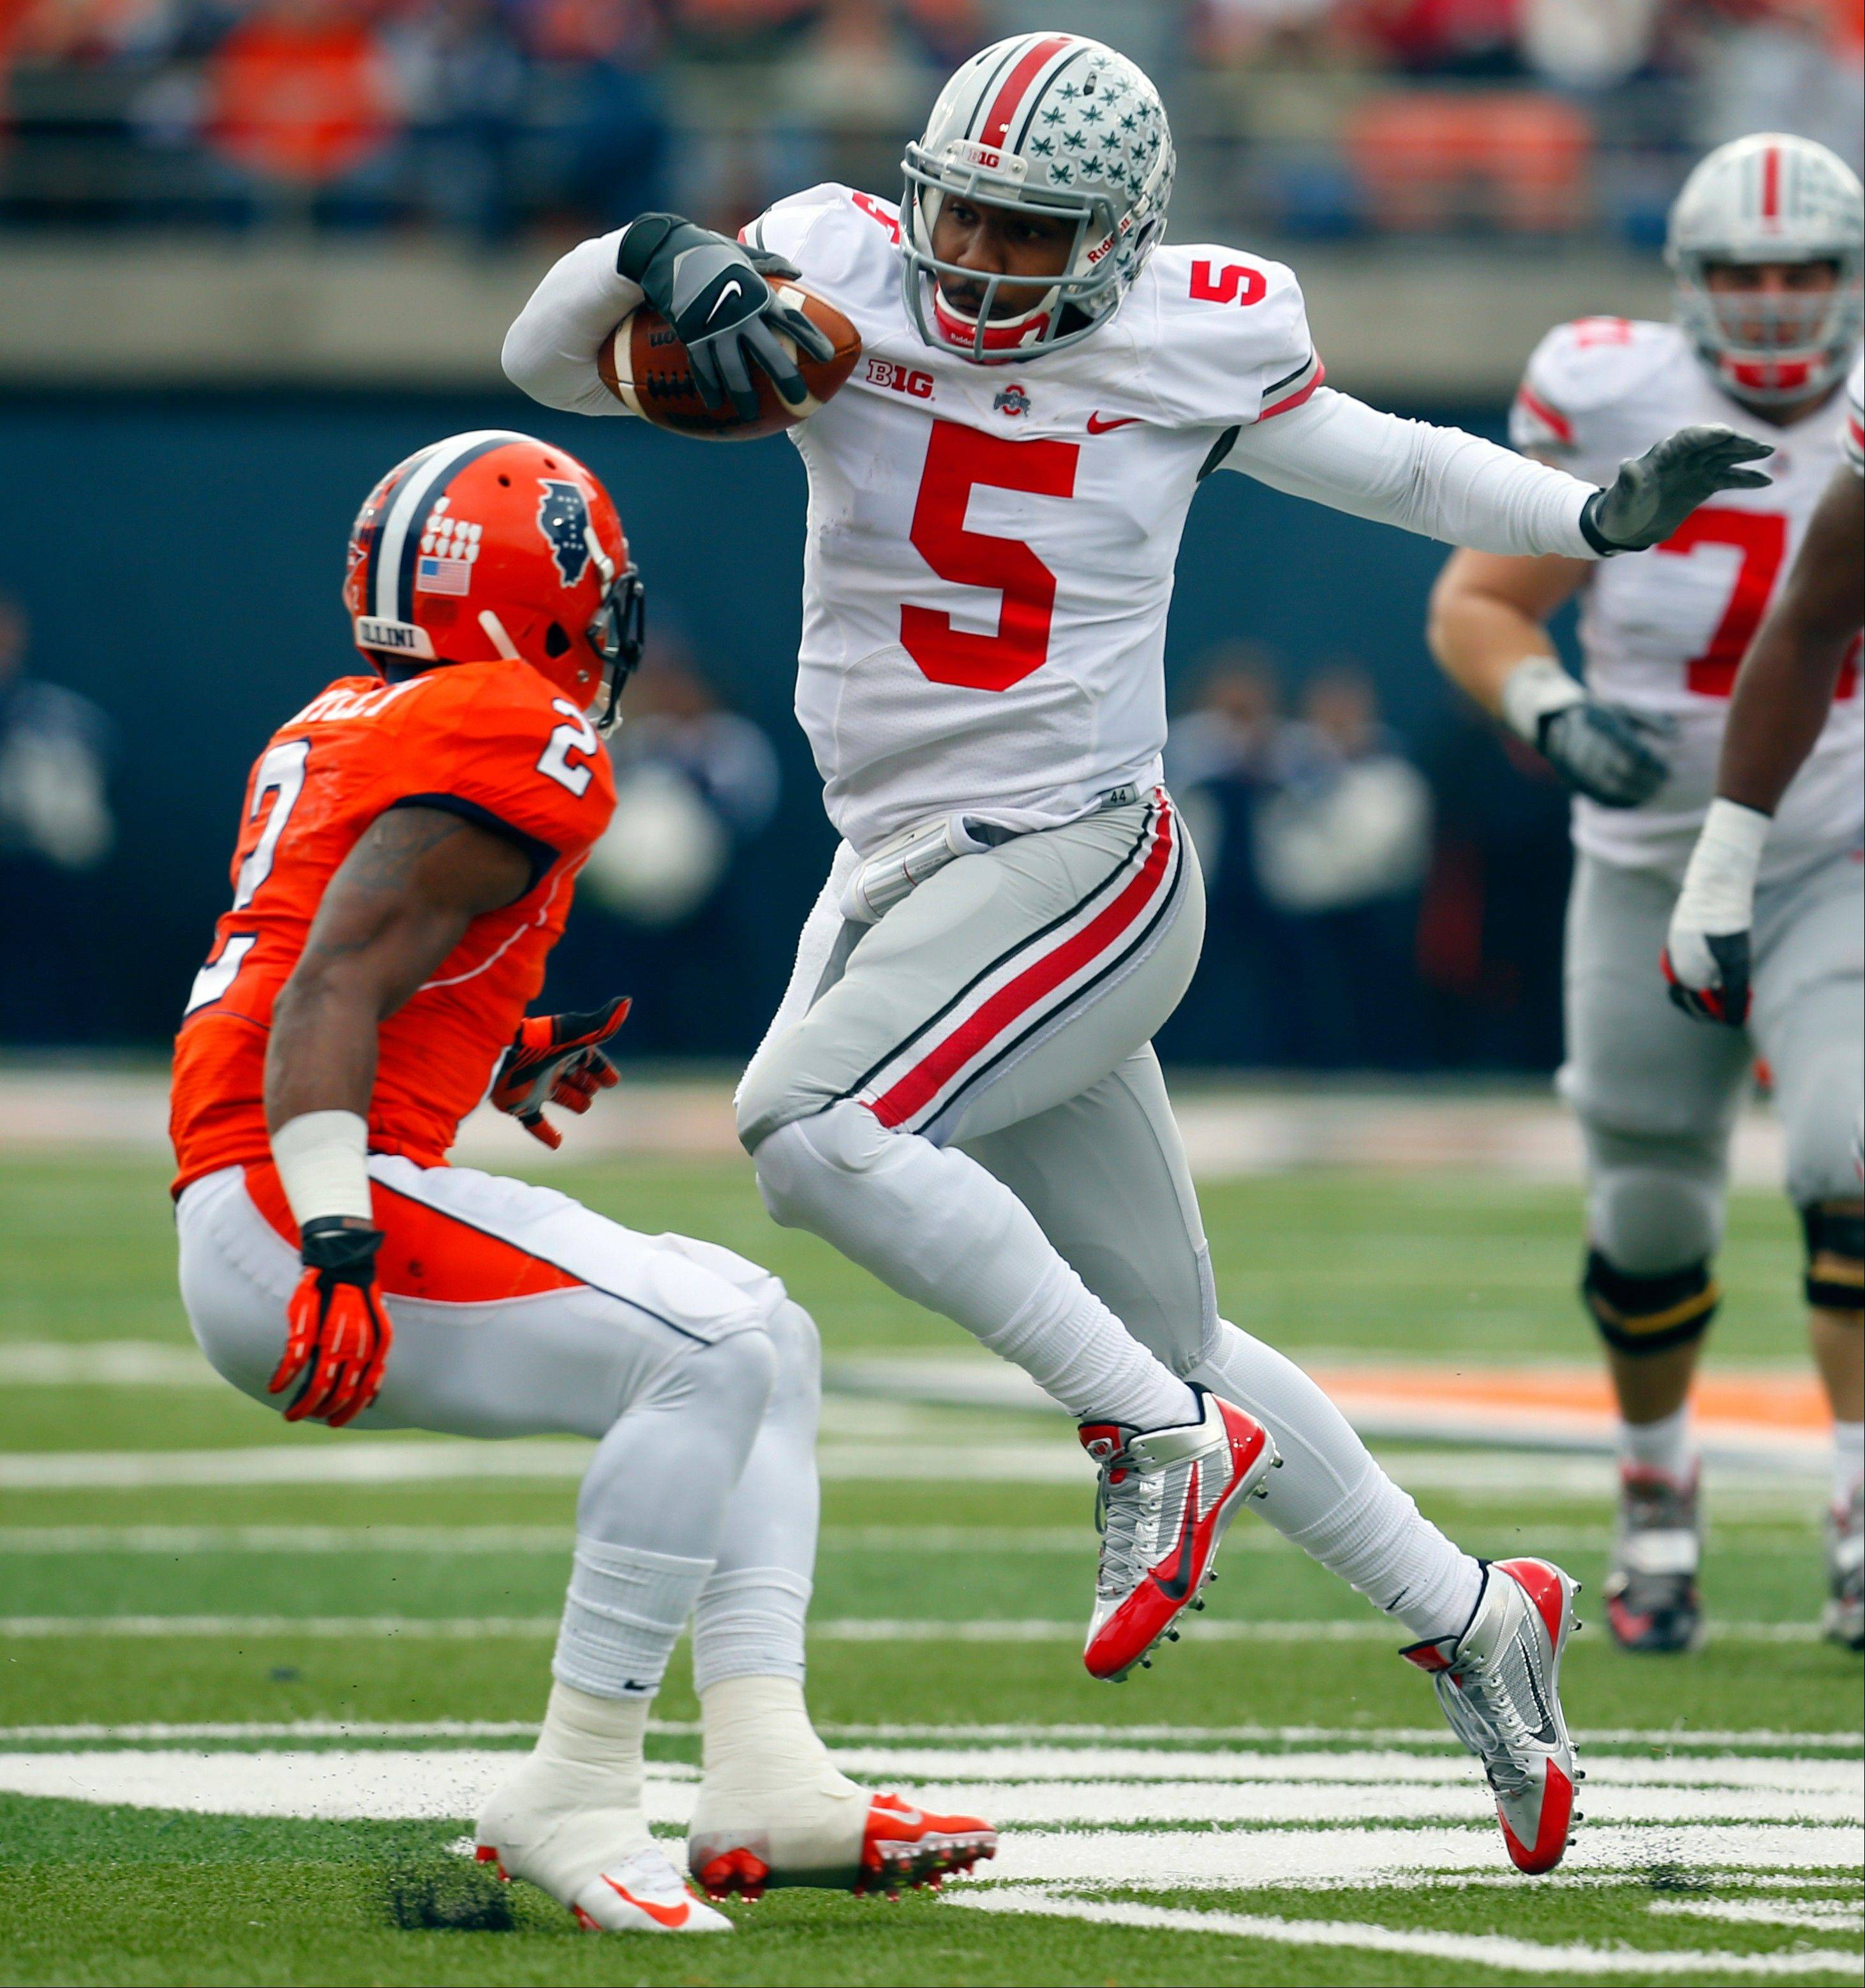 Ohio State quarterback Braxton Miller has completed 68 percent of his passes and thrown 19 touchdowns against just four interceptions this season.